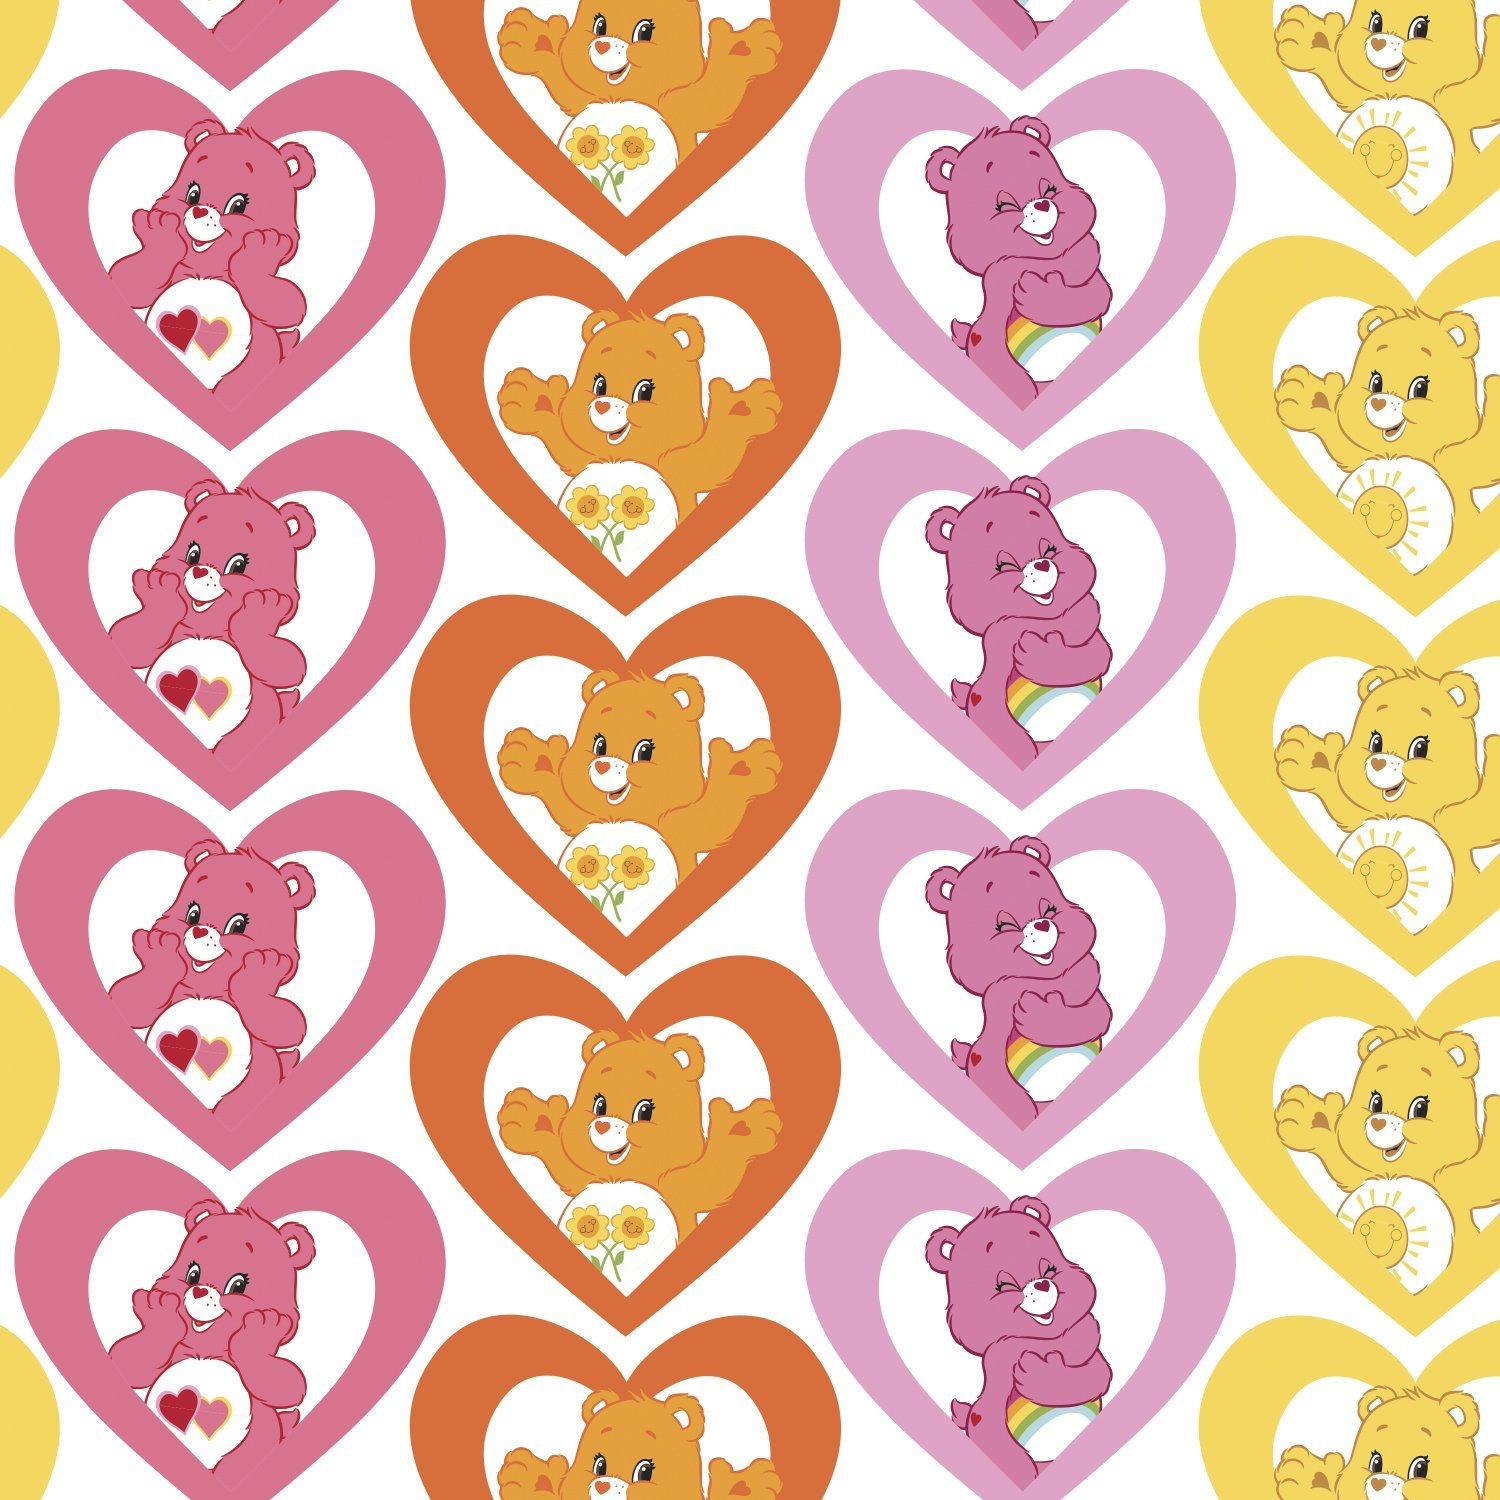 Care Bears 44010105-1 Warm Hearts